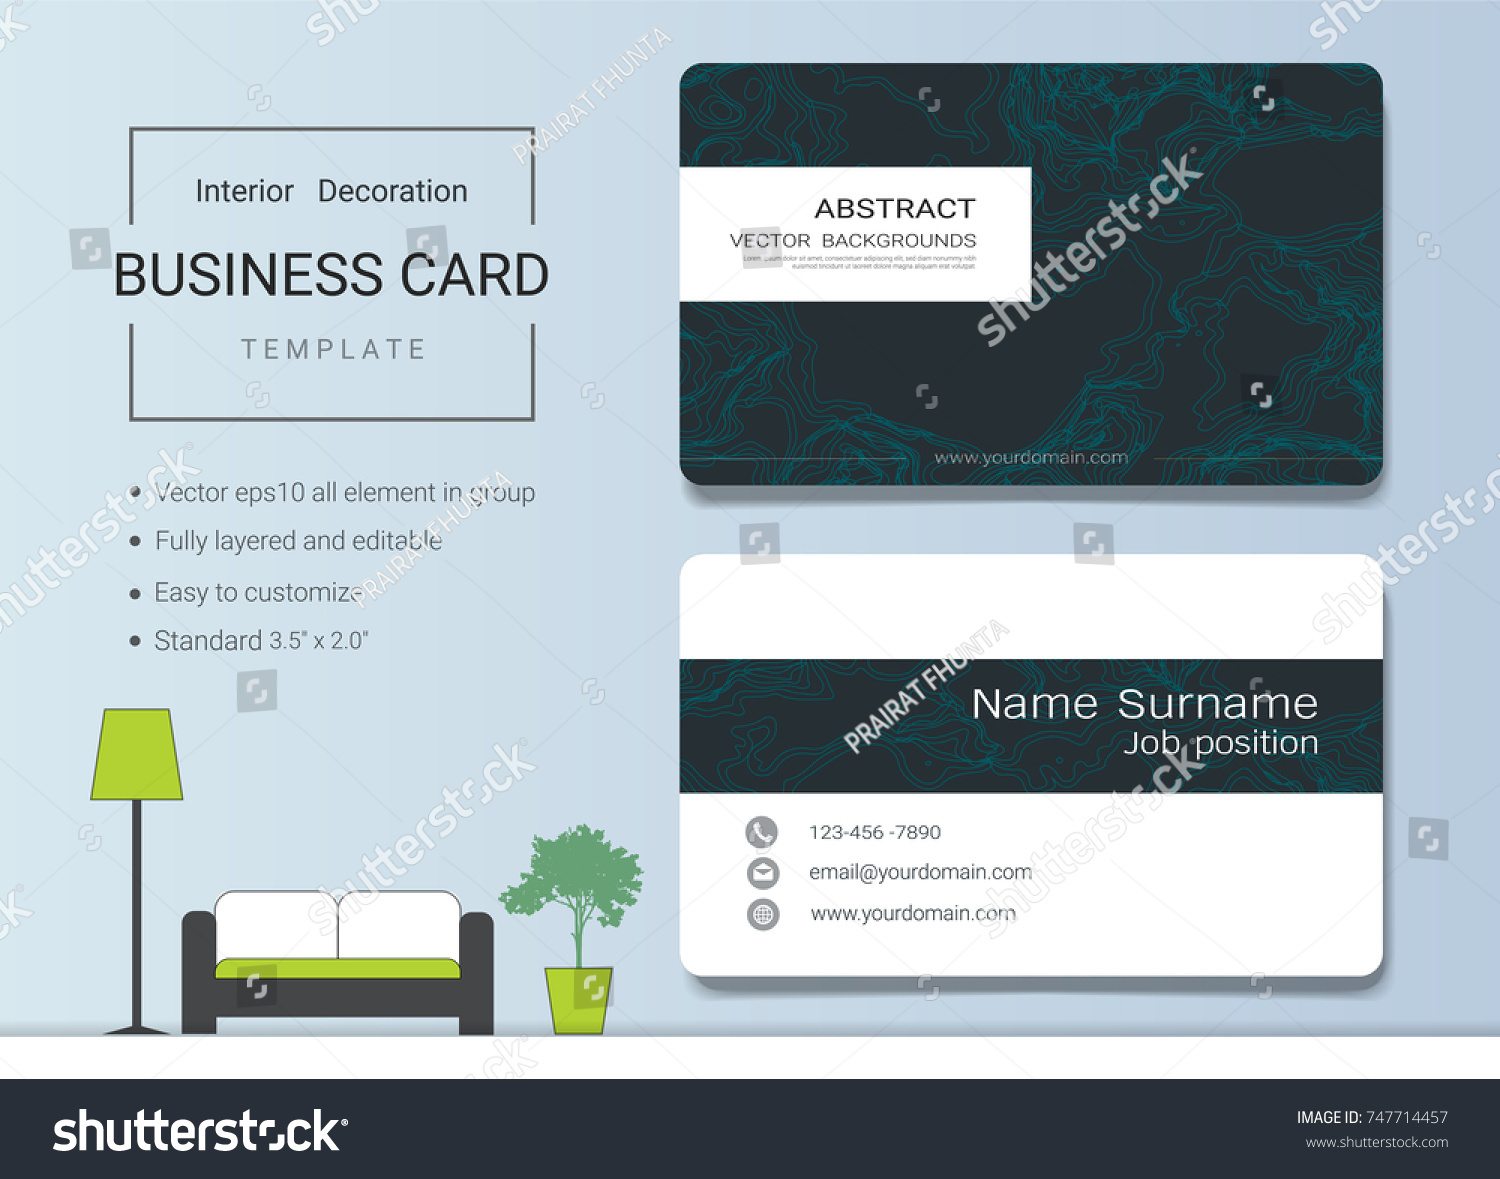 Business name card template interior designer stock vector 747714457 business name card template for interior designer modern and elegant style with marbling texture imitation reheart Images